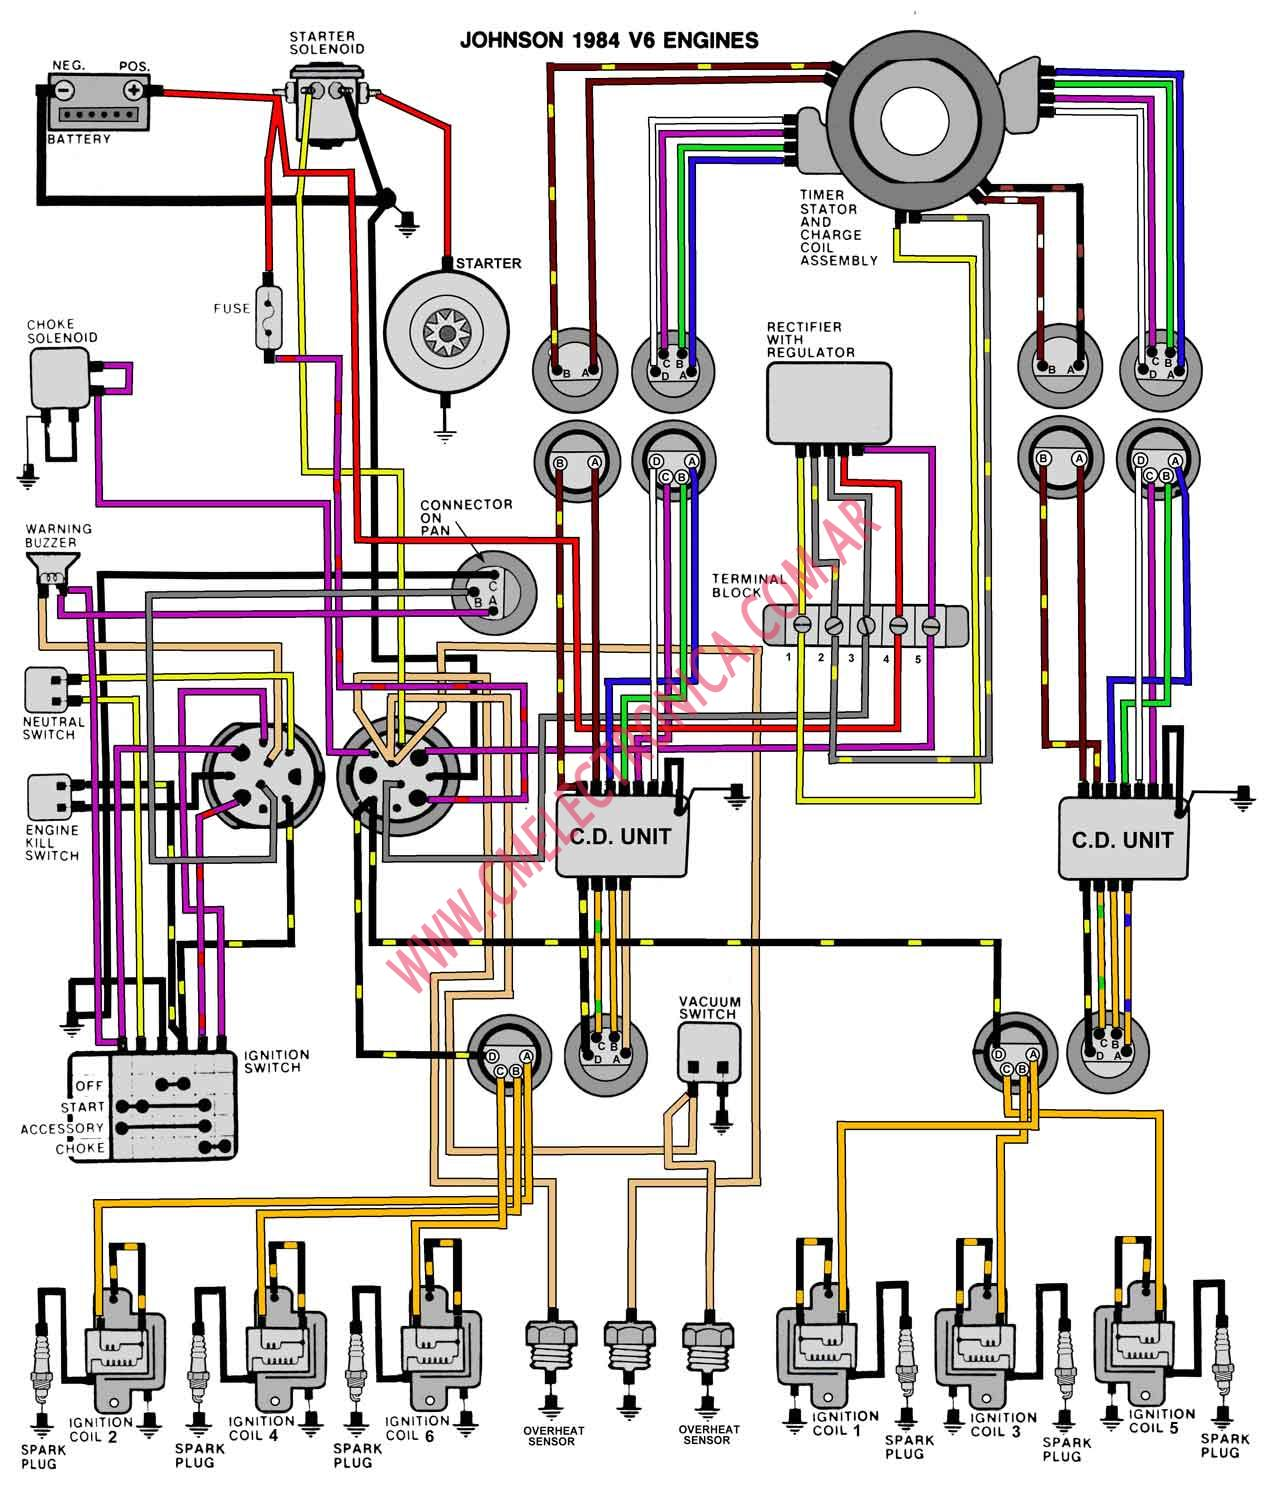 johnson engine wiring diagram johnson image wiring nissan navara tail light wiring diagram wirdig on johnson engine wiring diagram ignition